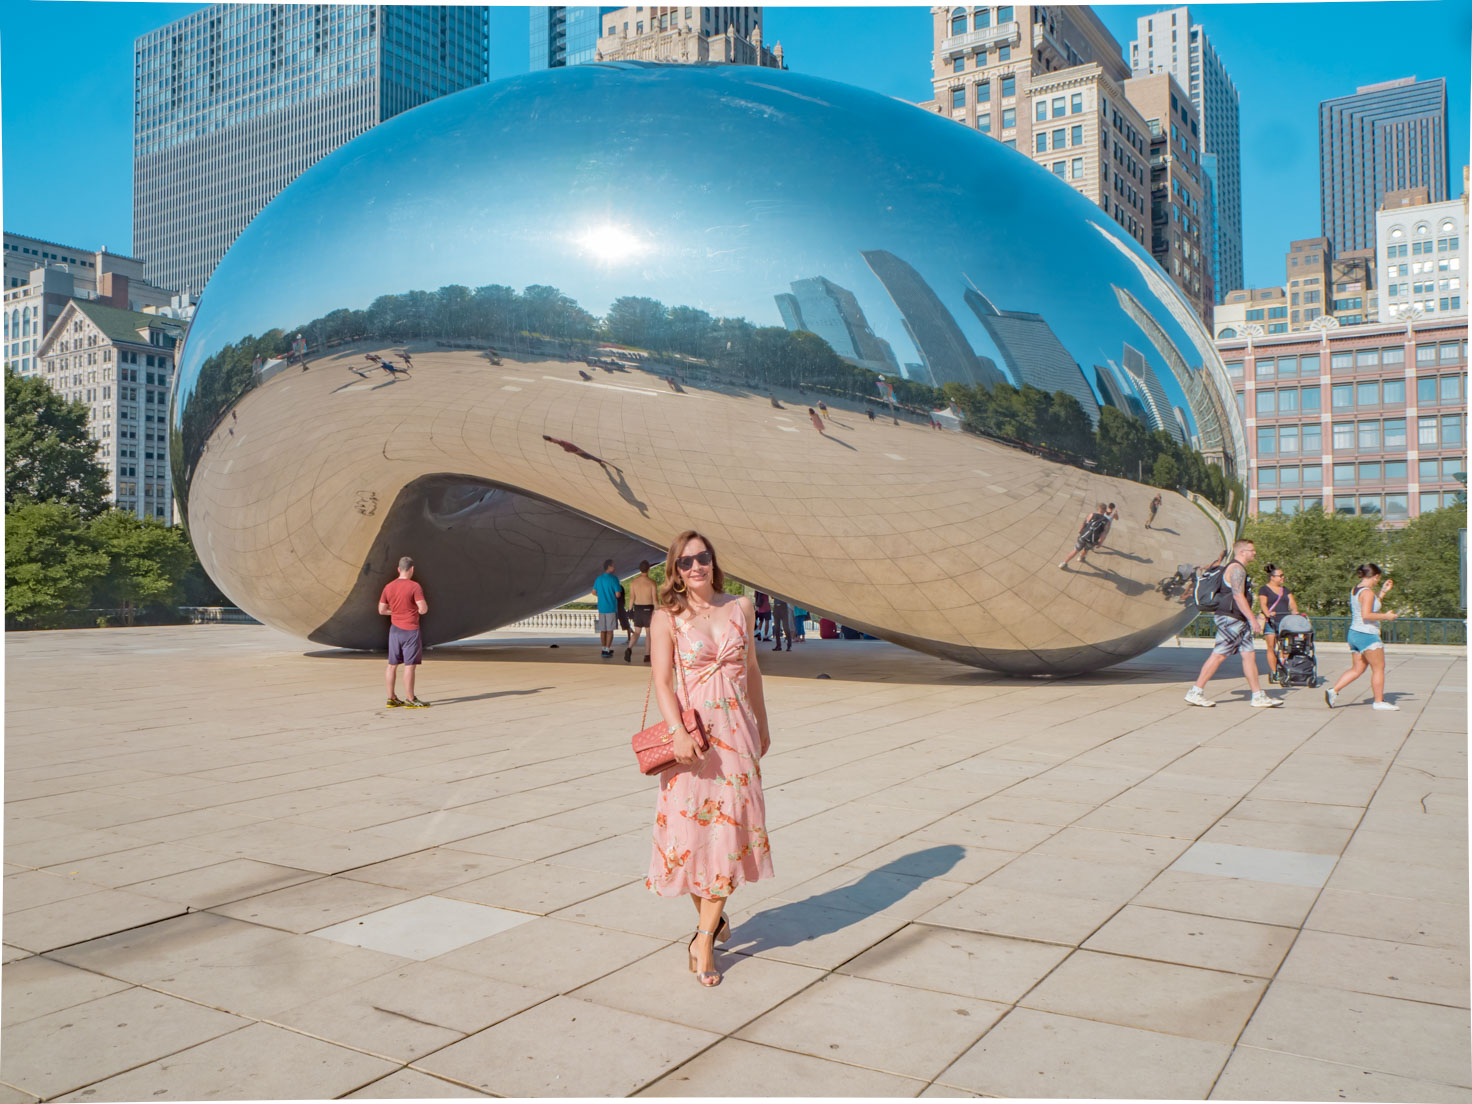 Chic Journal blogger Petra in front of Cloud gate at Millennium par in Chicago